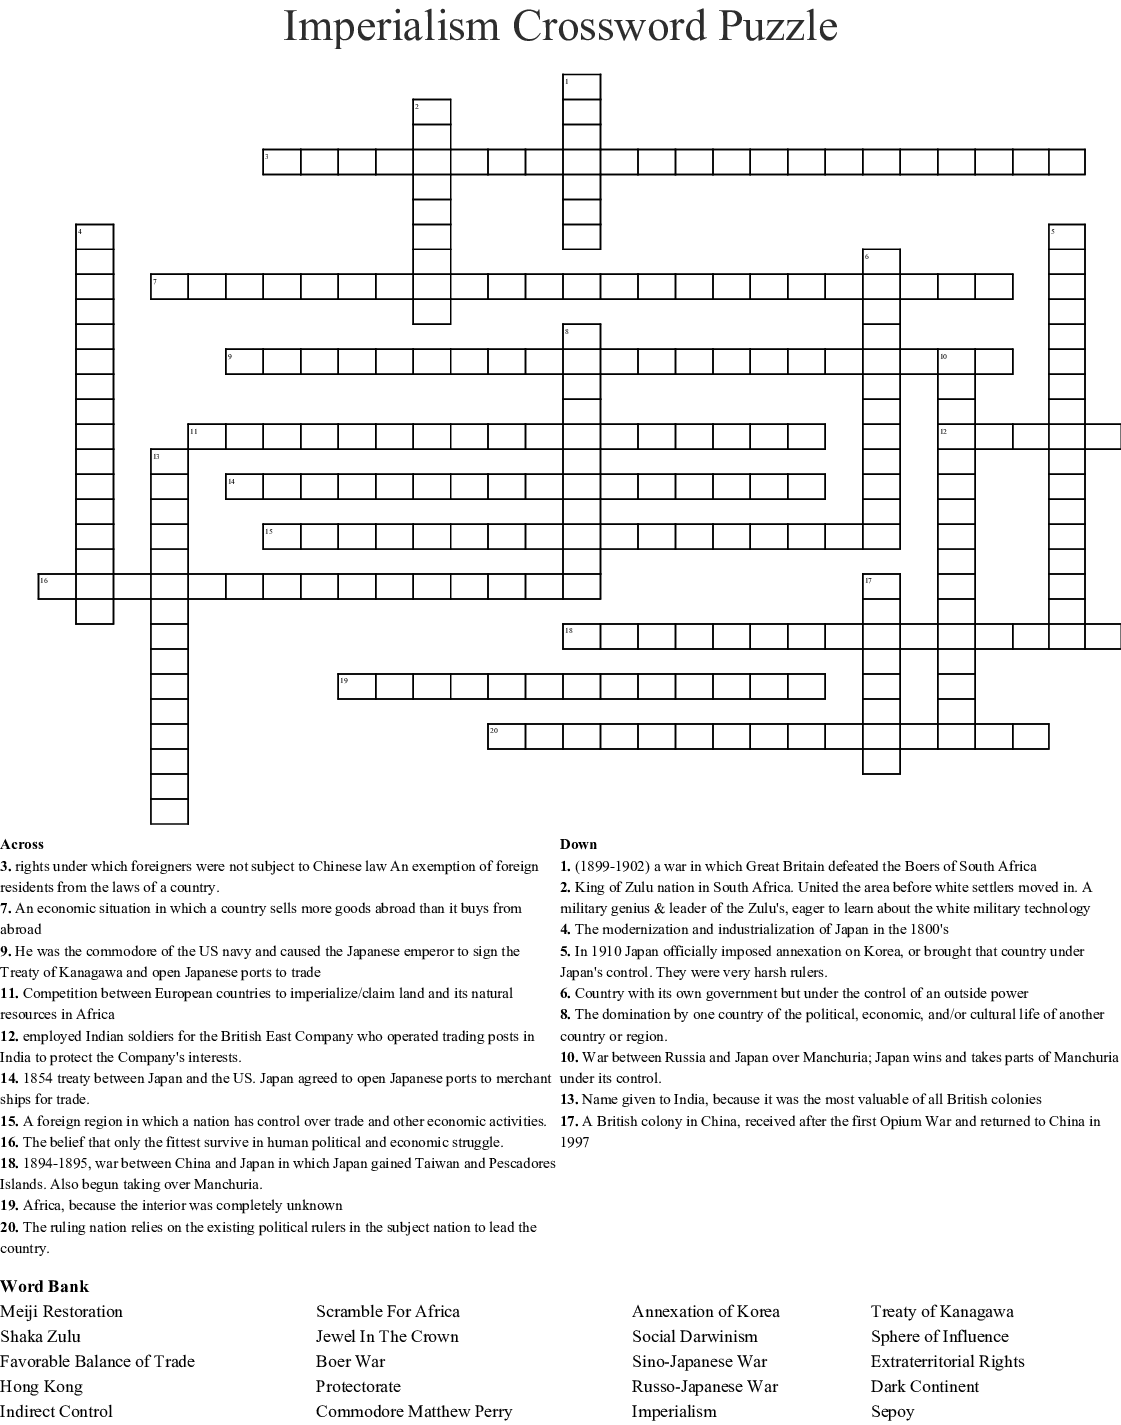 Imperialism Word Search